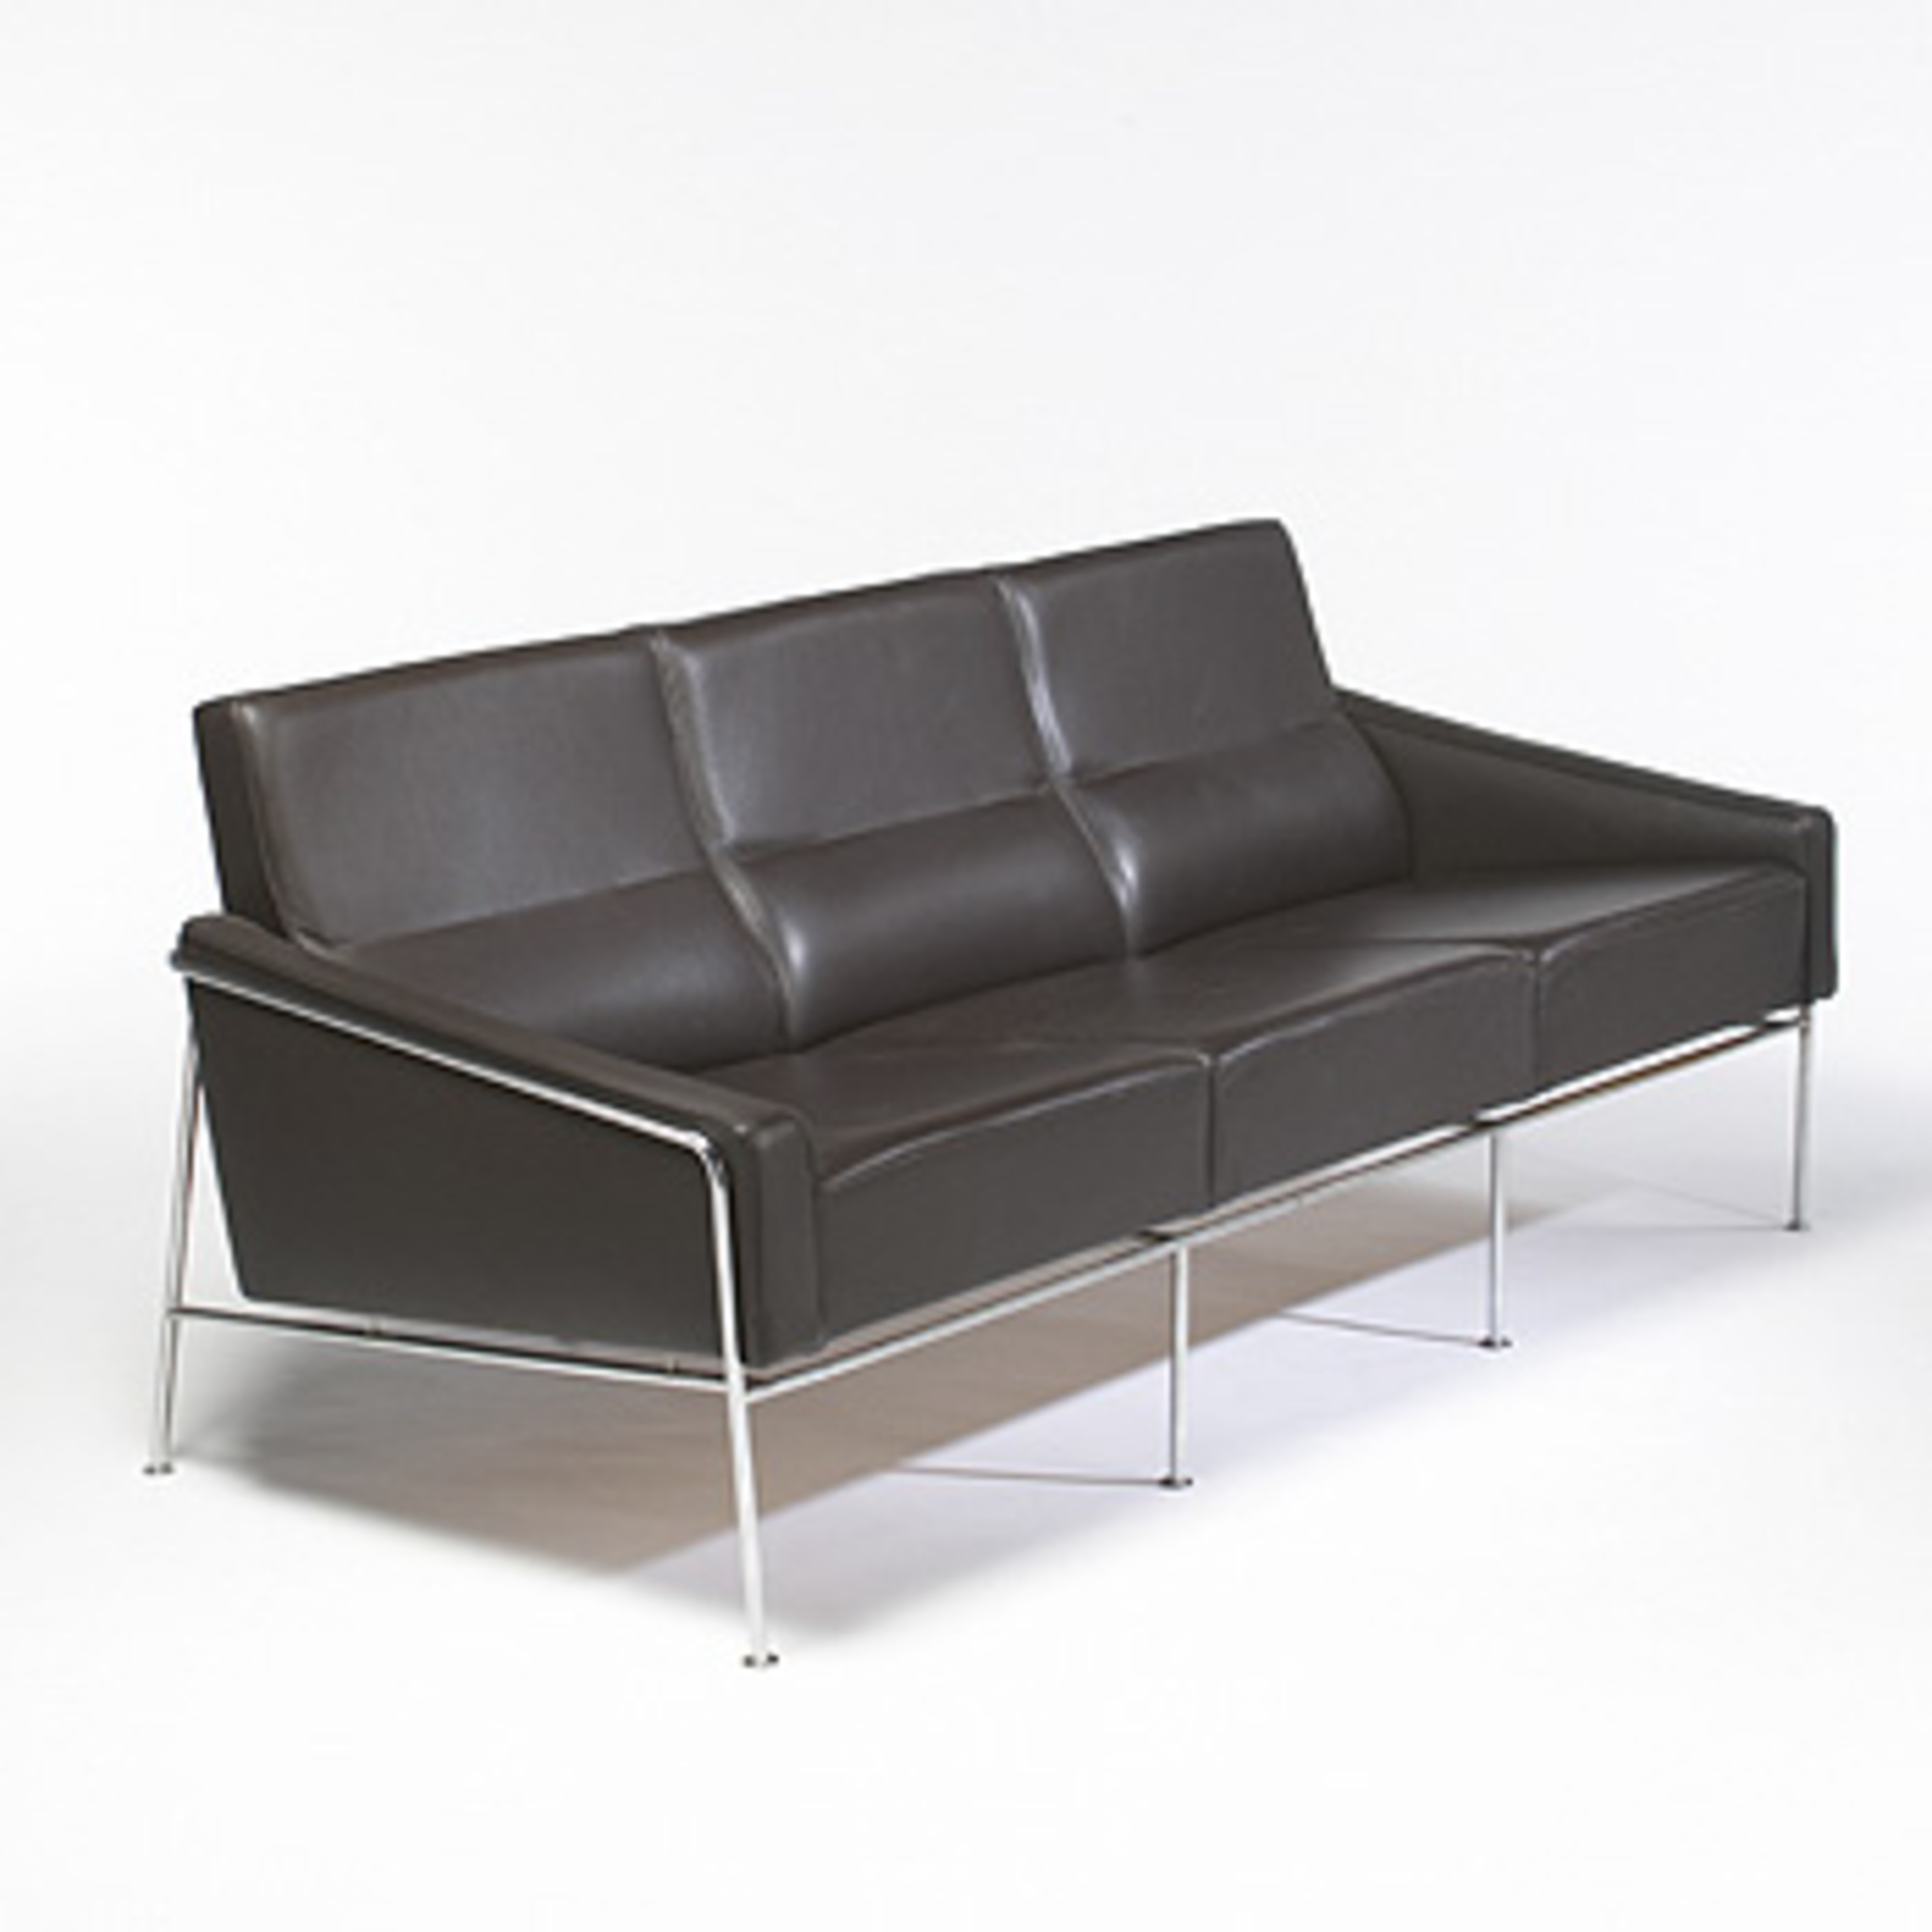 363 Arne Jacobsen 3300 Series Sofa Modern Contemporary Design 10 October 2006 Auctions Wright Of Art And